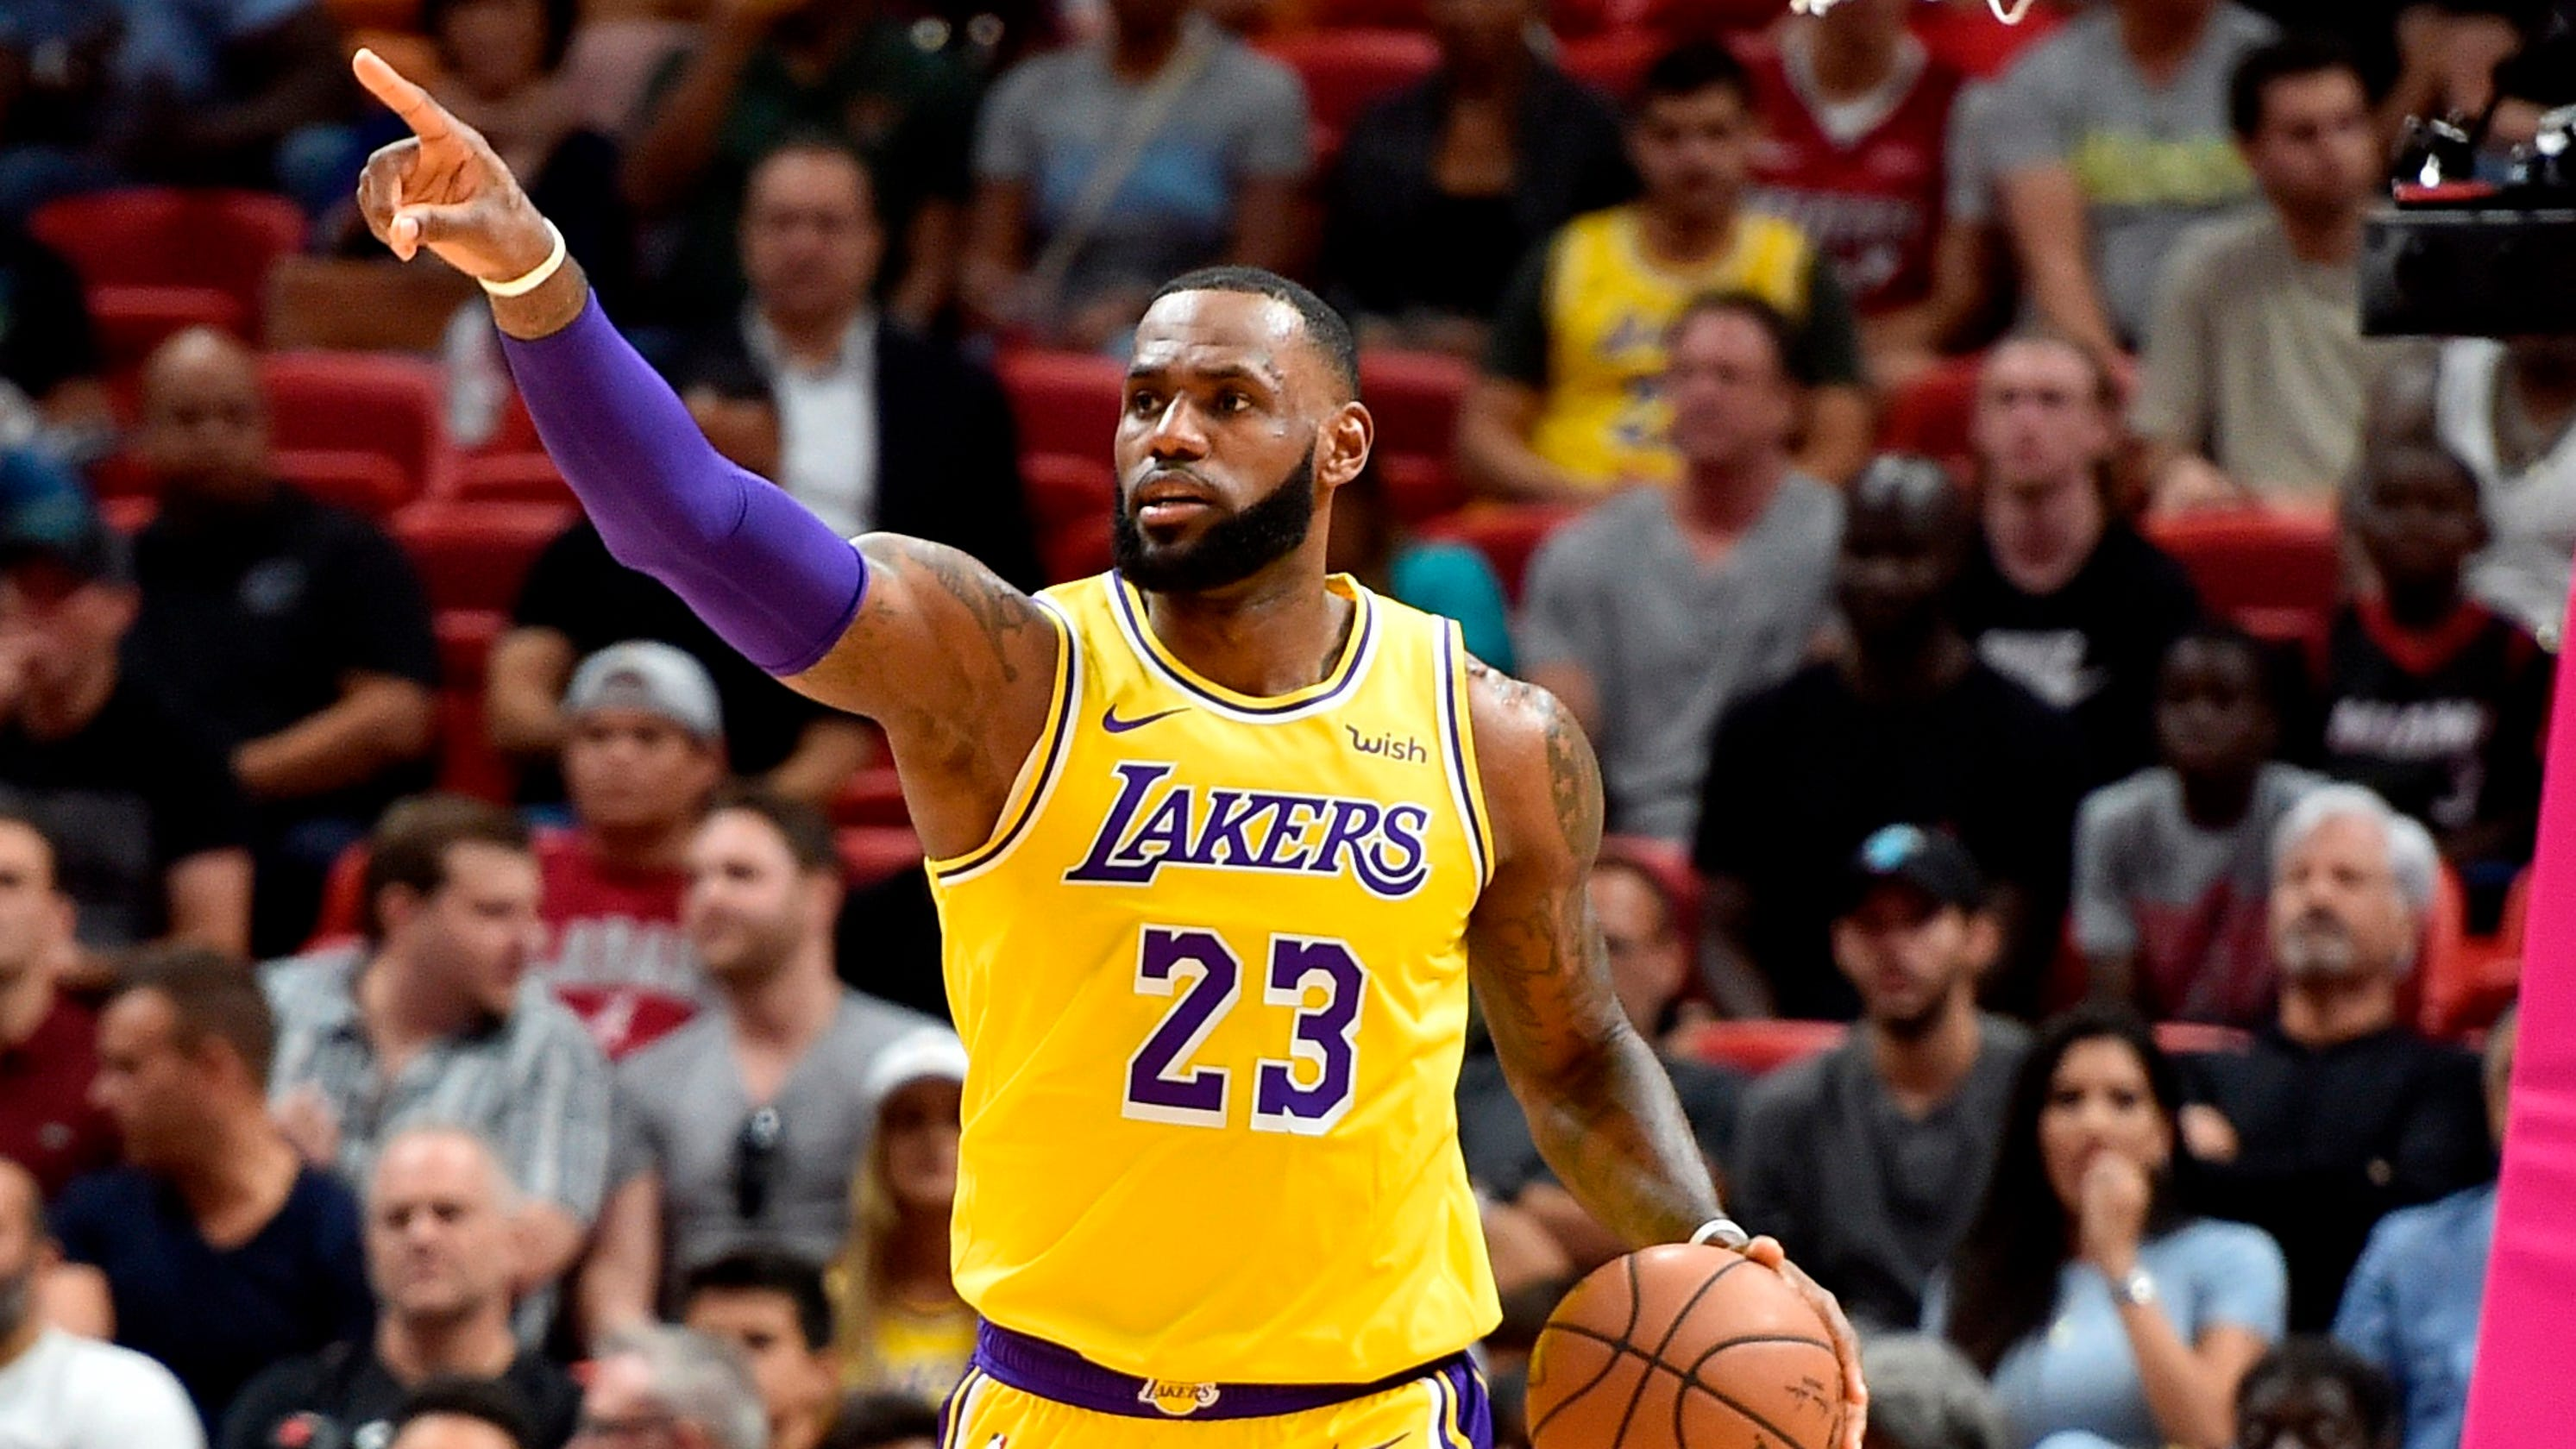 55ae13bf37d8 LeBron James erupts for season-high 51 points to lead Lakers past Heat